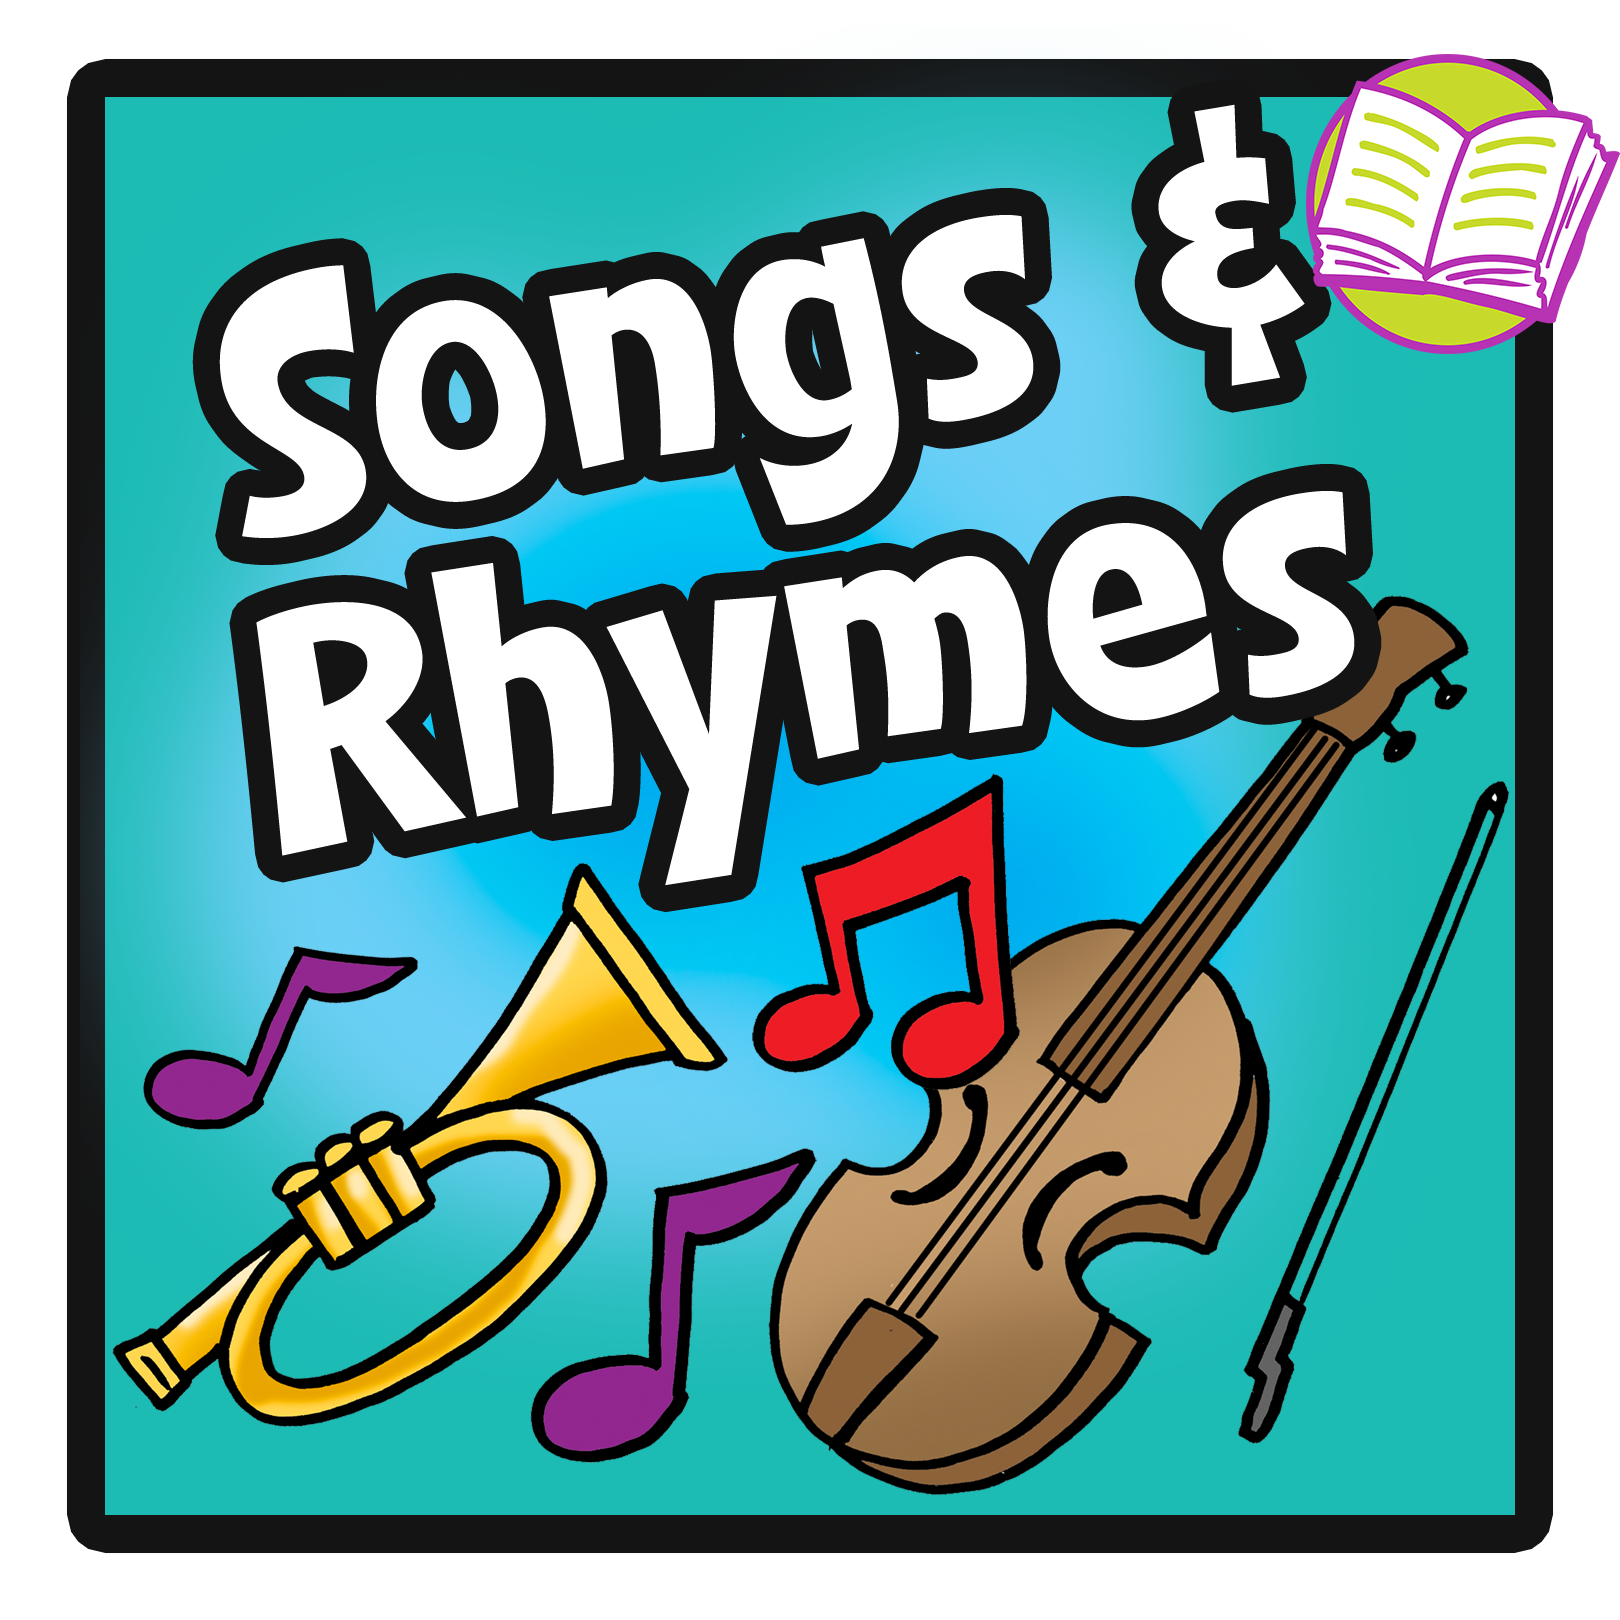 Nursery Rhyme Activities Loads Of Printable Poems Songs And Nursery Rhyme Charts Ready For